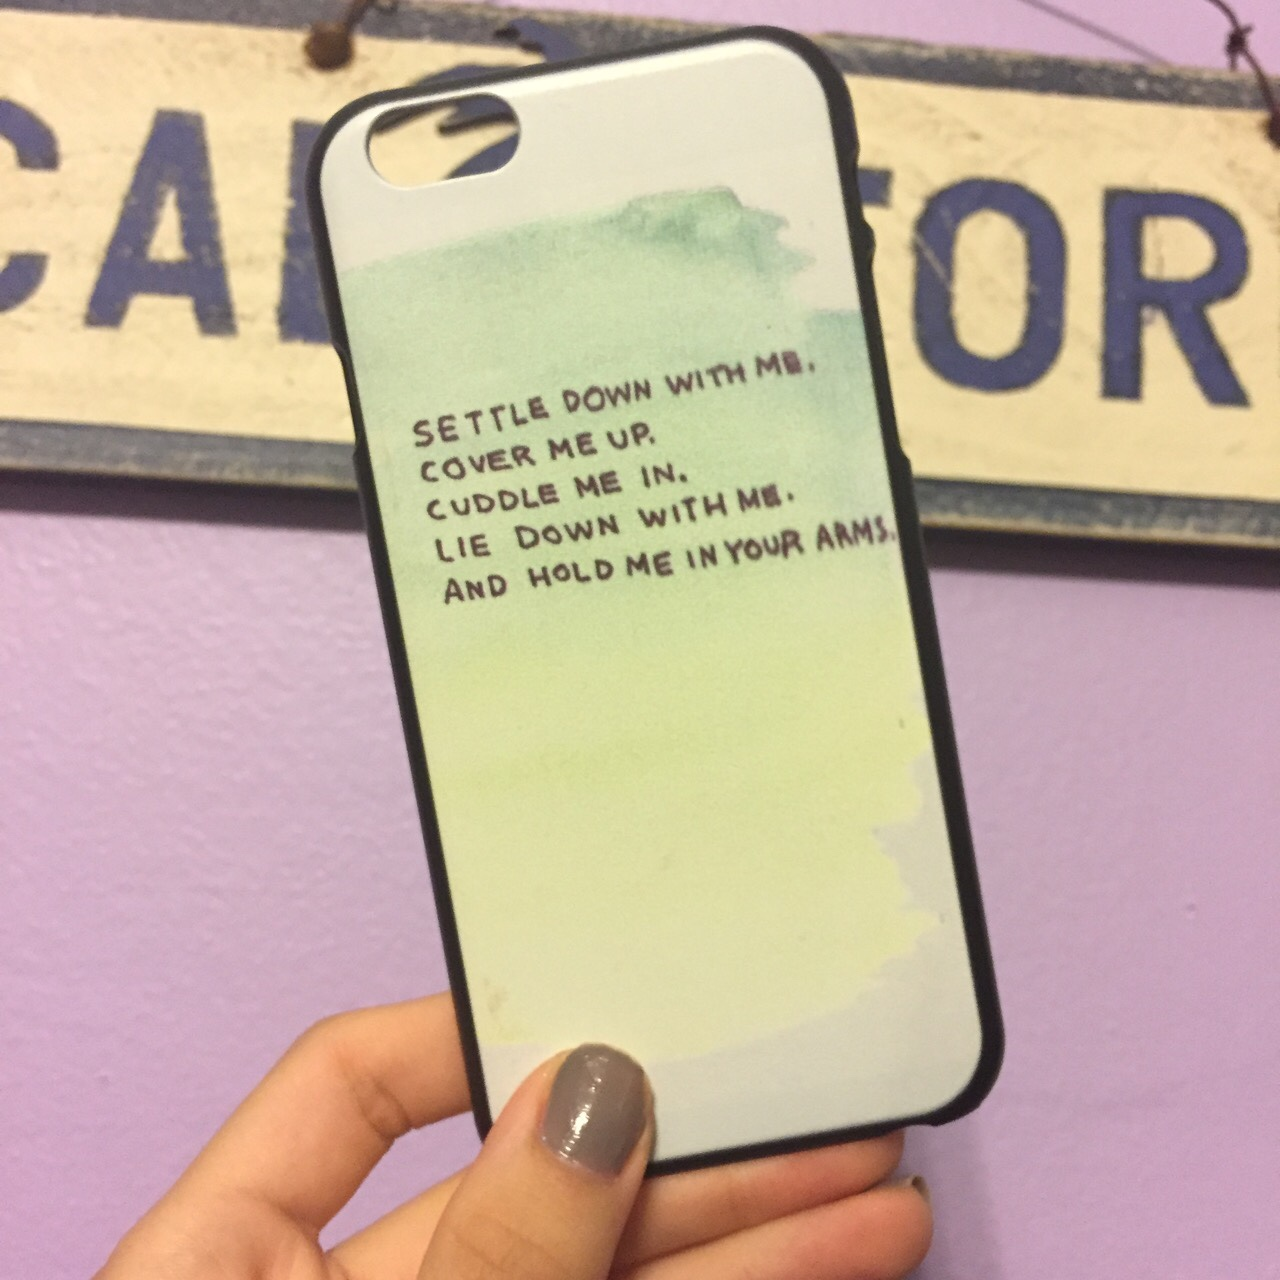 Cute Ed Sheeran lyrics iPhone 6 case  Never used    - Depop